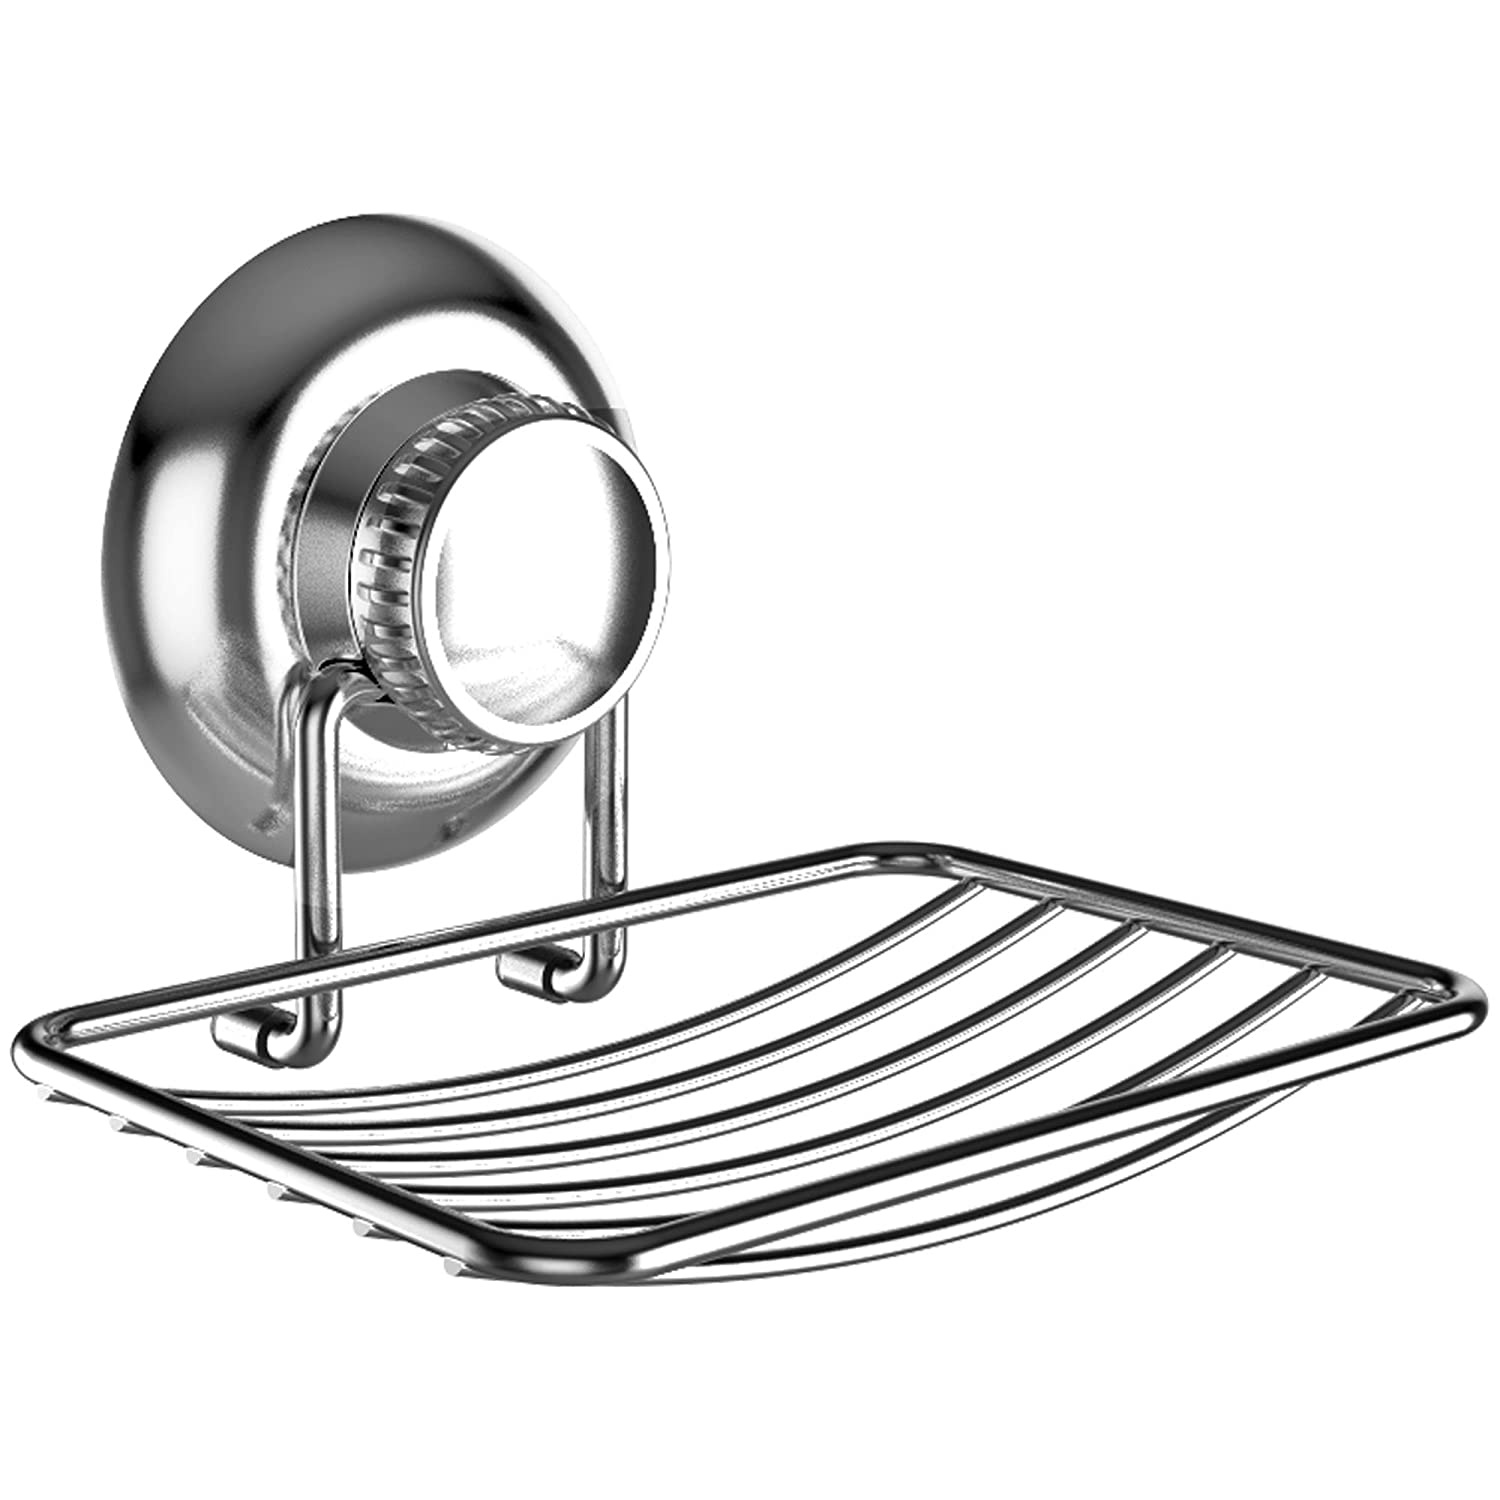 G-Loc Rustproof Silver Vacuum Suction Soap Dish Holder for Shower or Bath, Sponge Holder Sink Organizer - Easy Installation and No Drilling Stainless Steel Pinnacle Brands